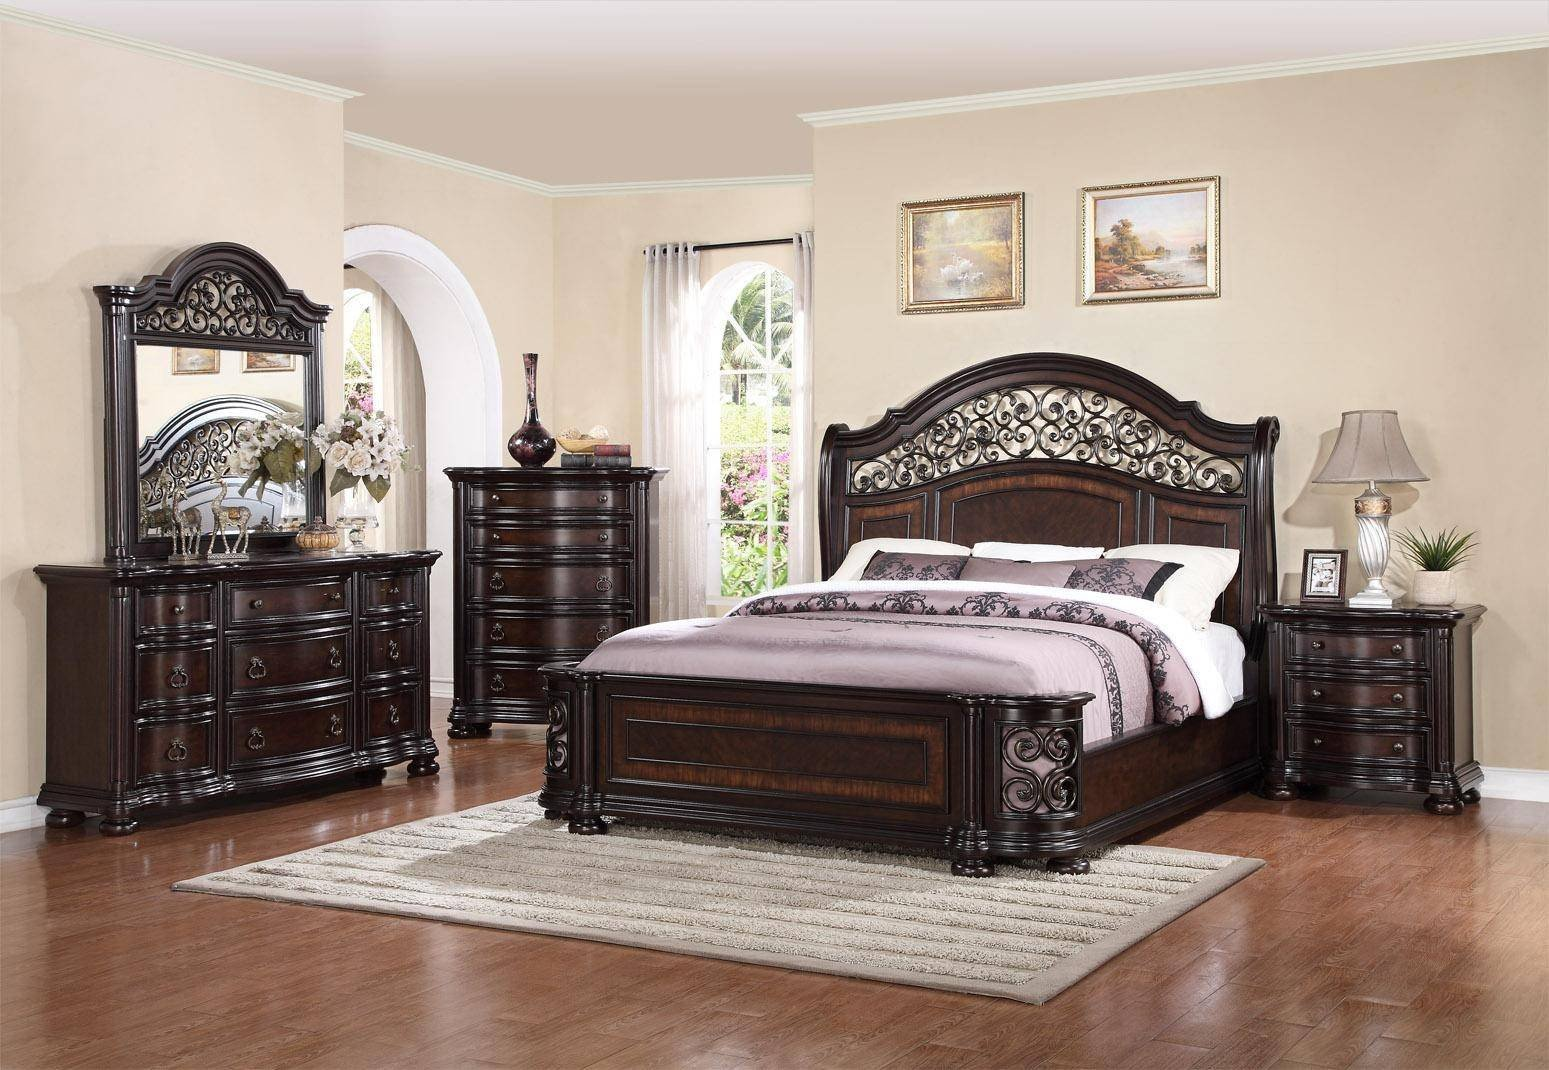 Cheap California King Bedroom Set New Mcferran B366 Allison Espresso Finish solid Hardwood